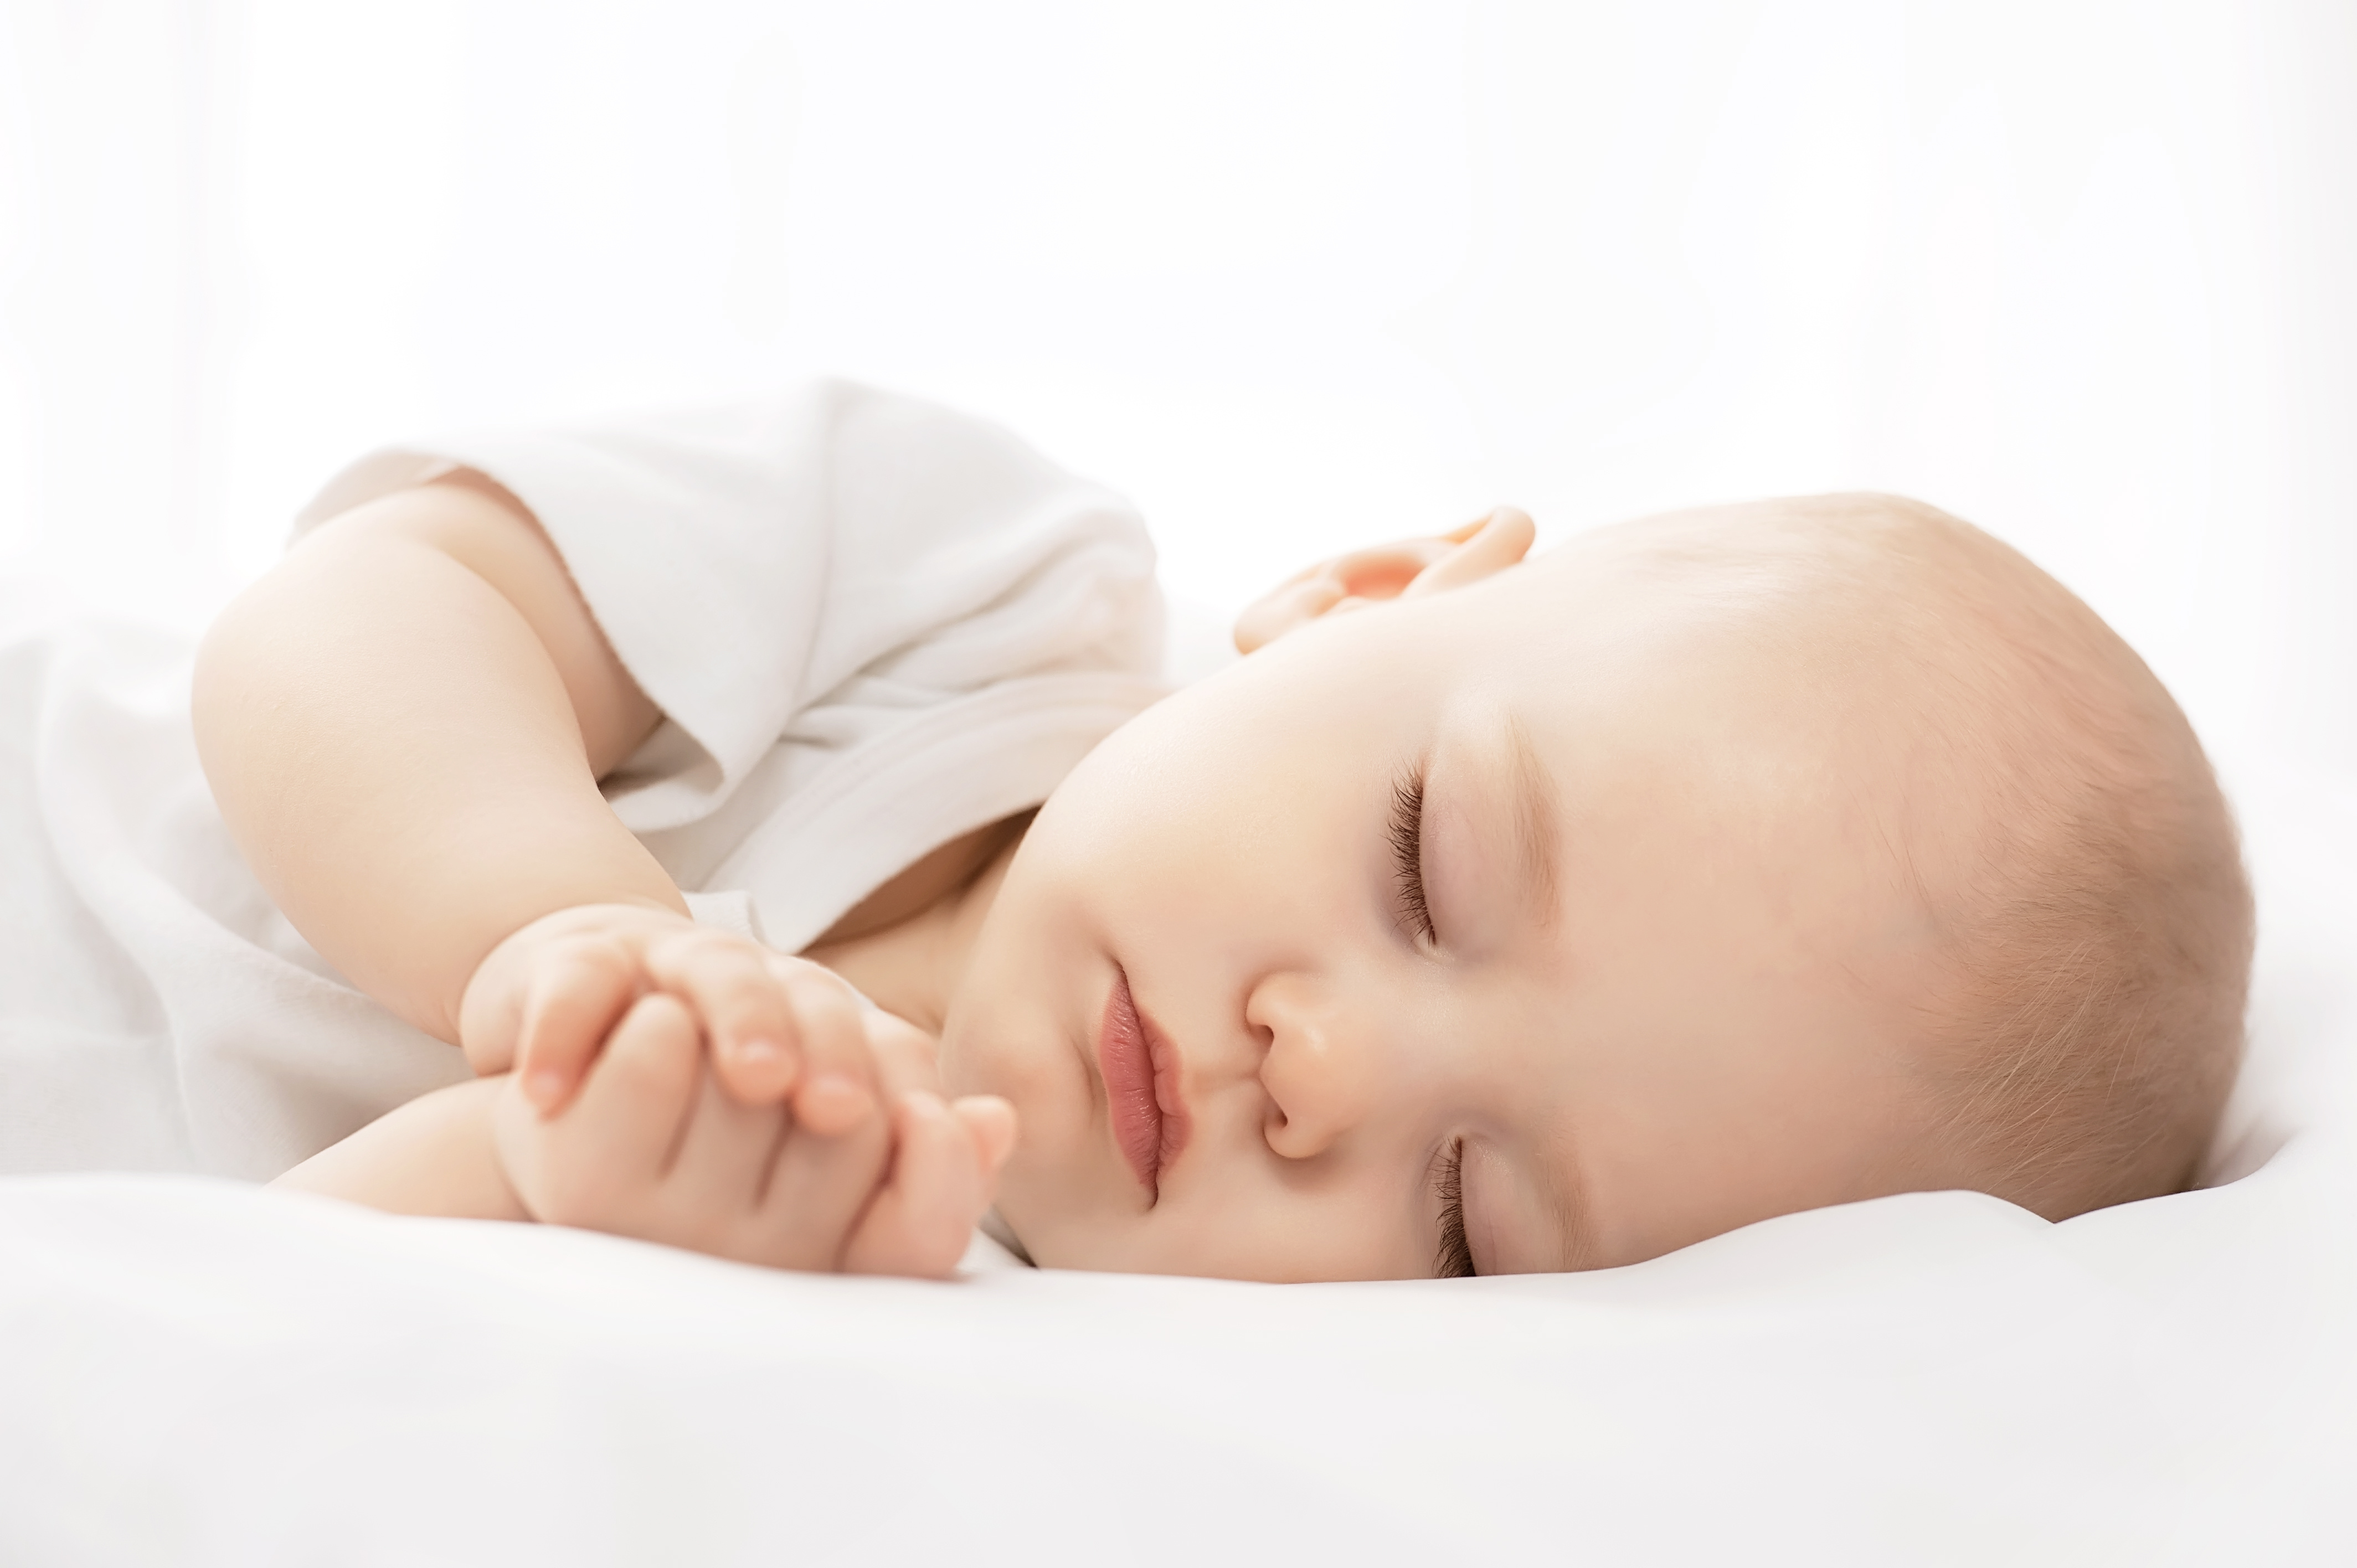 the features of the sudden infant death syndrome Sudden infant death syndrome (sids) is the sudden and unexplained death of a baby younger than 1 year old a diagnosis of sids is made if the baby's death remains unexplained even after a death scene investigation, an autopsy and a review of the clinical history.